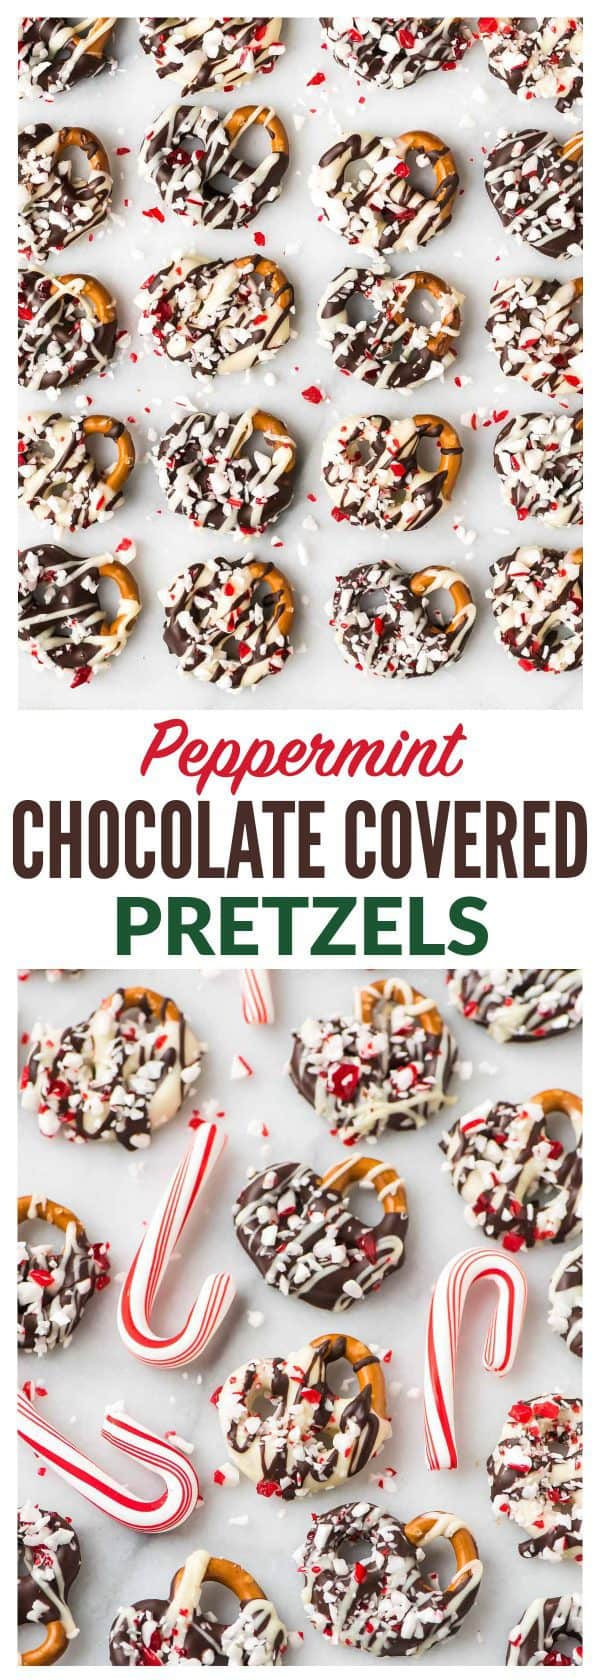 How to make easy Dark or White Chocolate Covered Pretzels with Peppermint. The perfect recipe for Christmas, Thanksgiving, and homemade holiday gifts! Simple, festive, and fun. The sweet-salt combo is complete addictive! #christmas #pretzels #recipe #easy